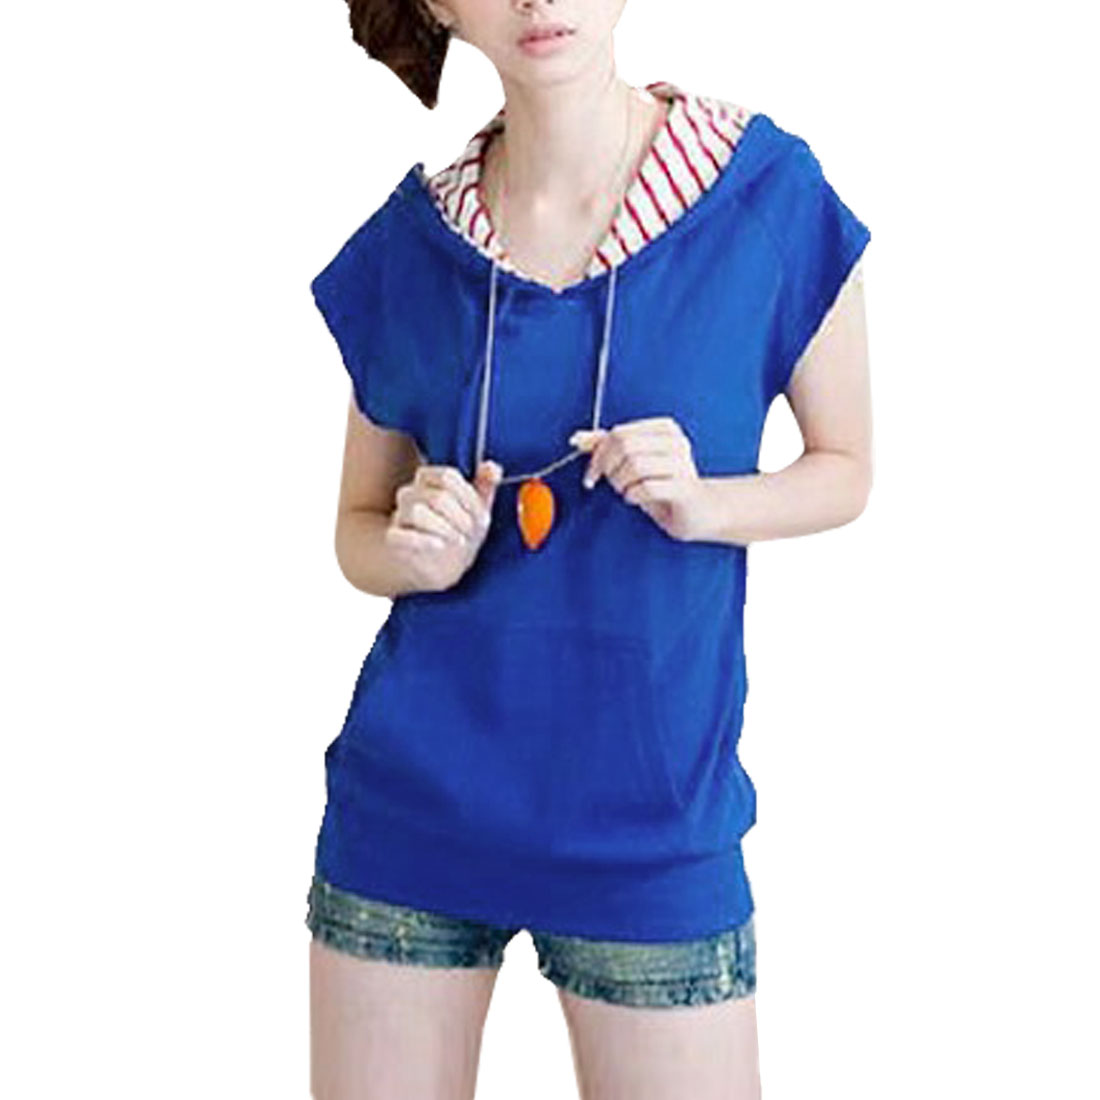 Summer Cap Sleeves Drawstring Hoodie T-shirt Royal Blue XS for Women